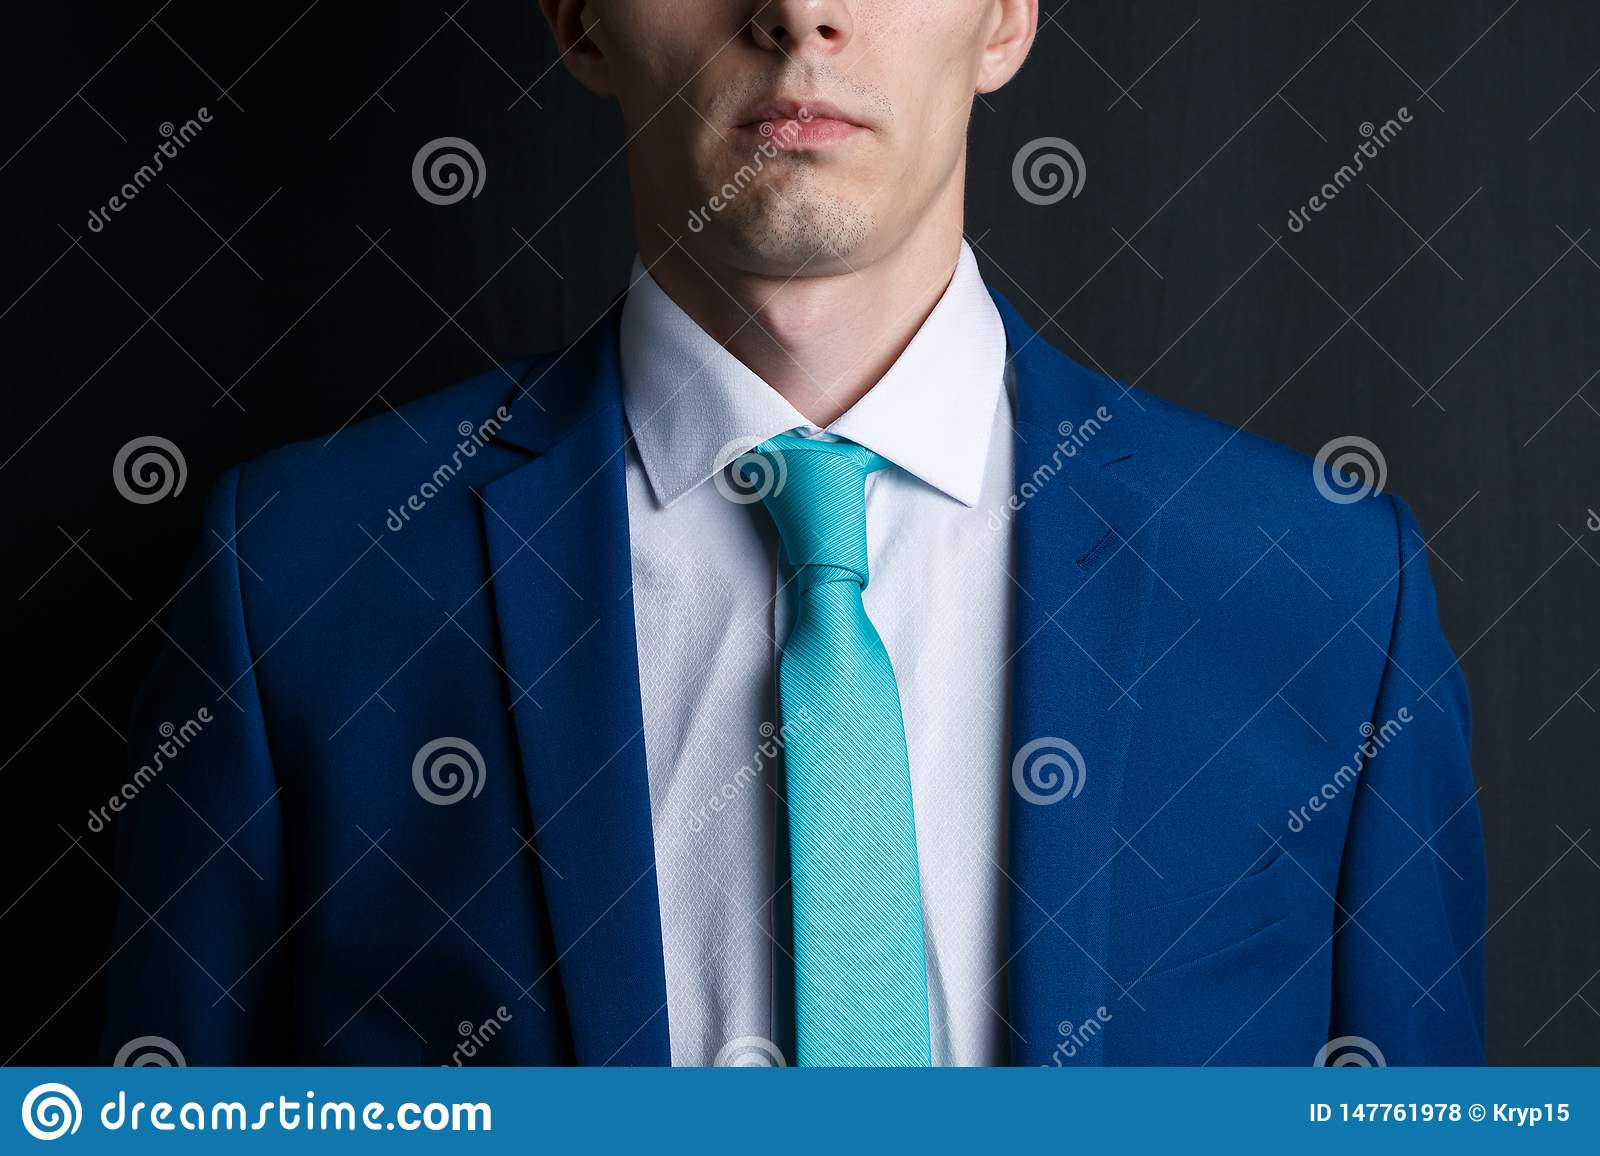 Close-up young man in an suit. He is in a white shirt with a tie. His face unshaven